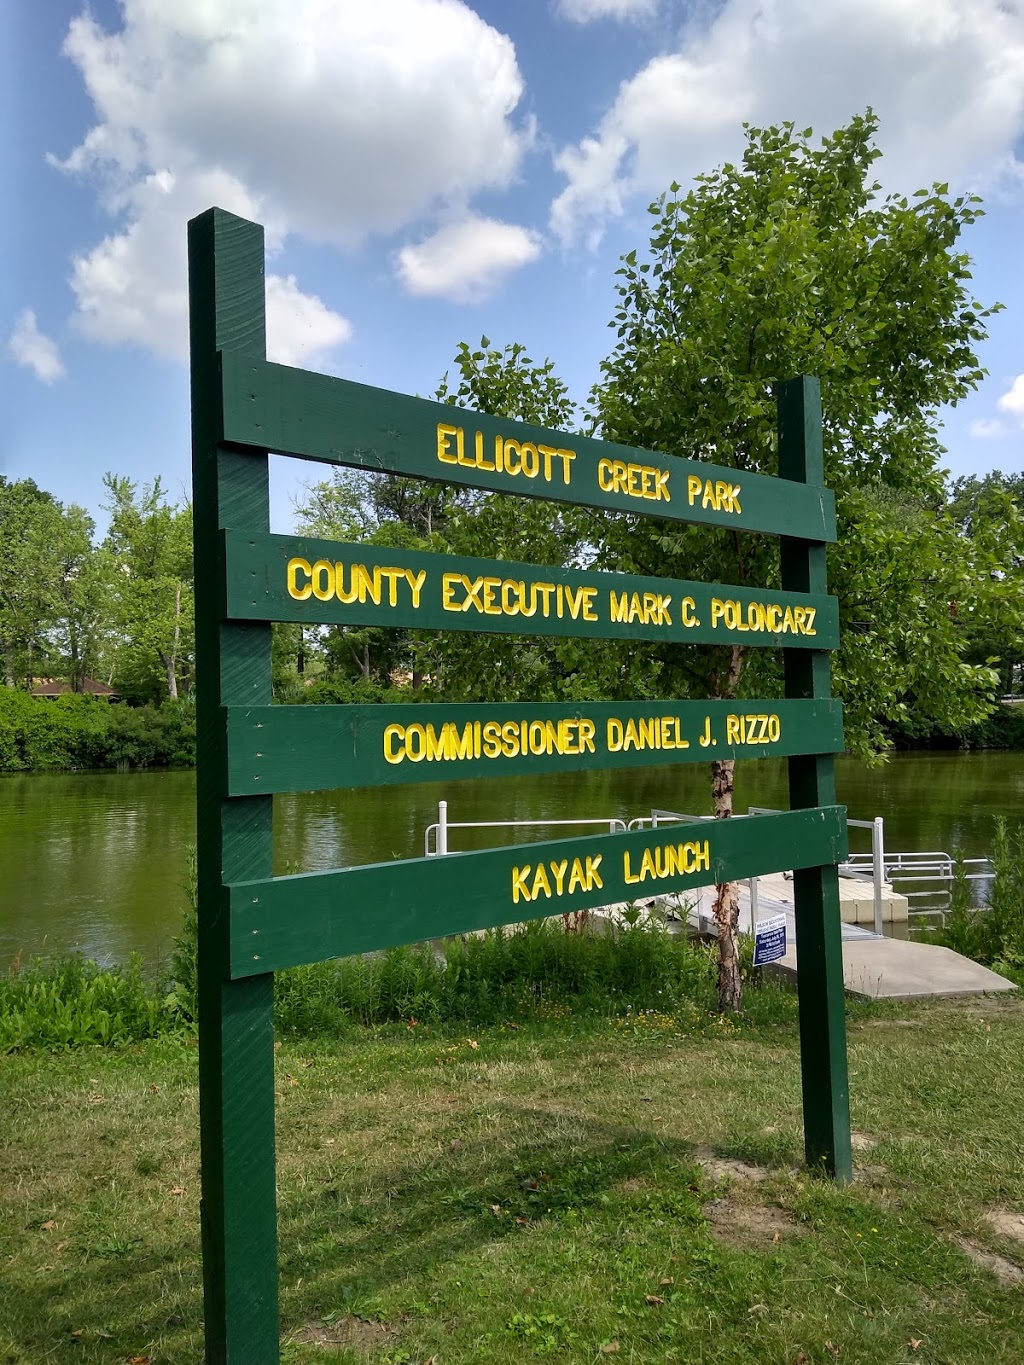 Ellicott Creek Park Kayak Launch | park | Tonawanda, NY 14150, USA